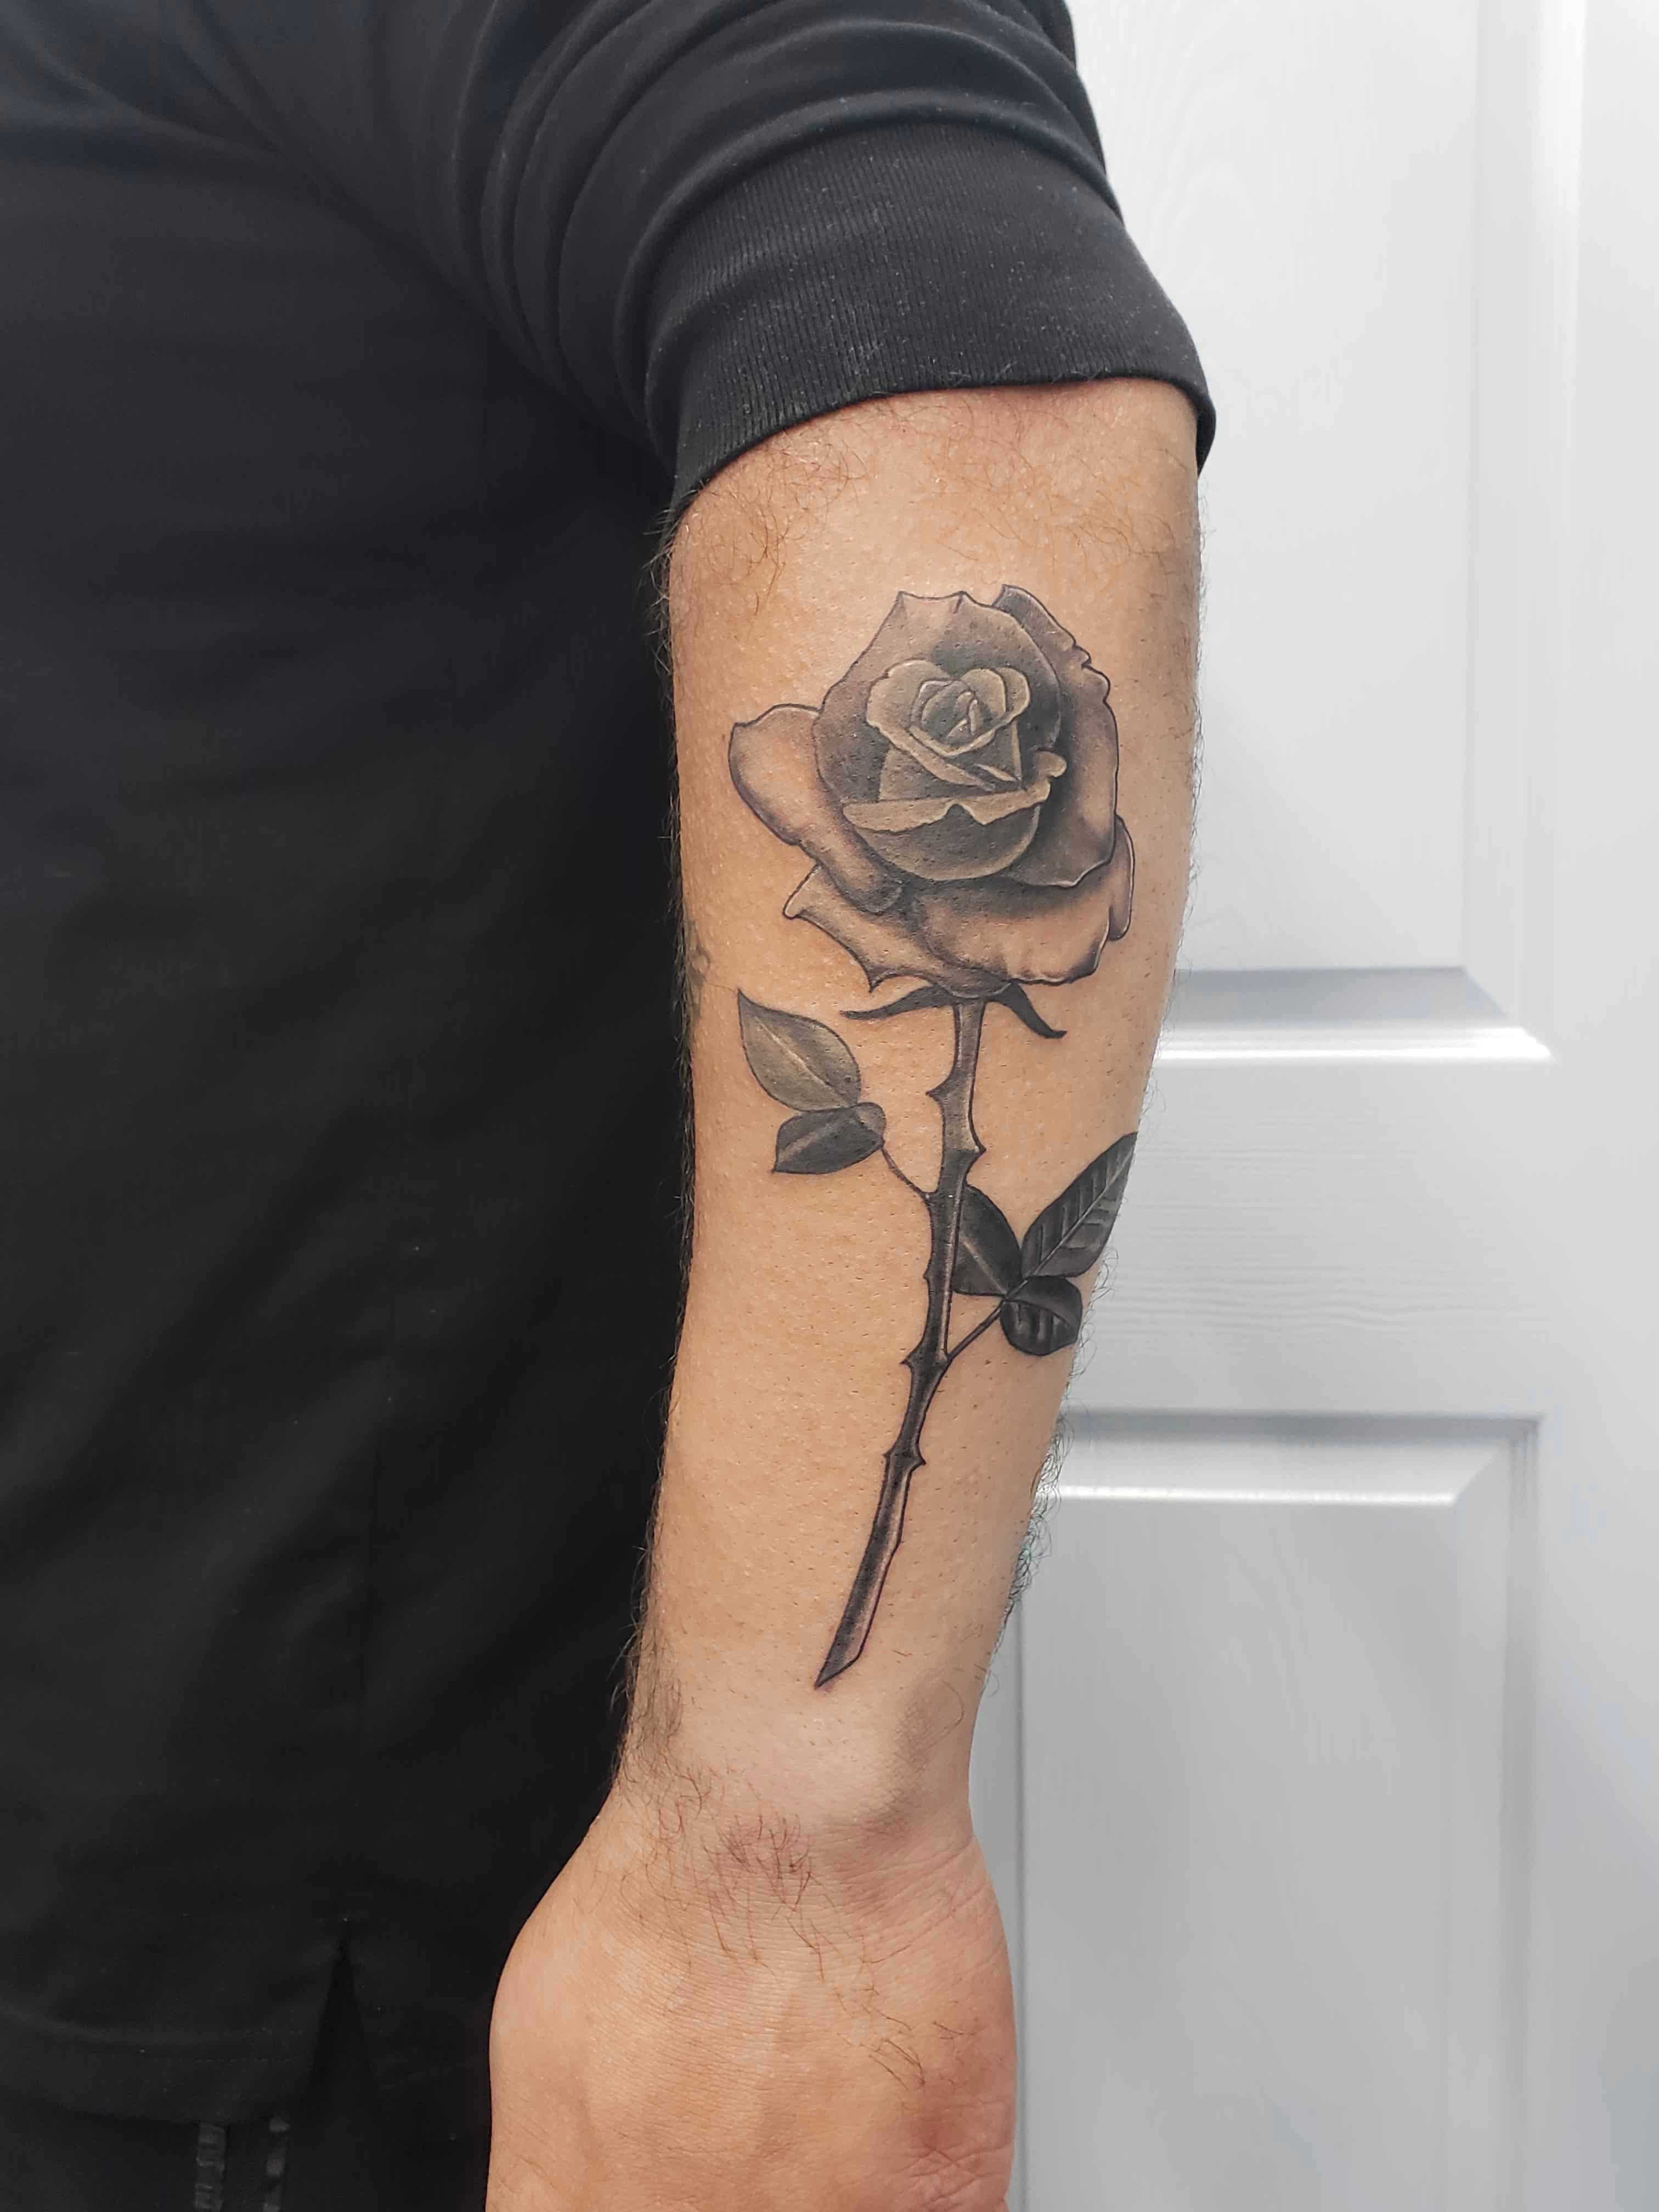 traditional tattoo of a rose on forearm